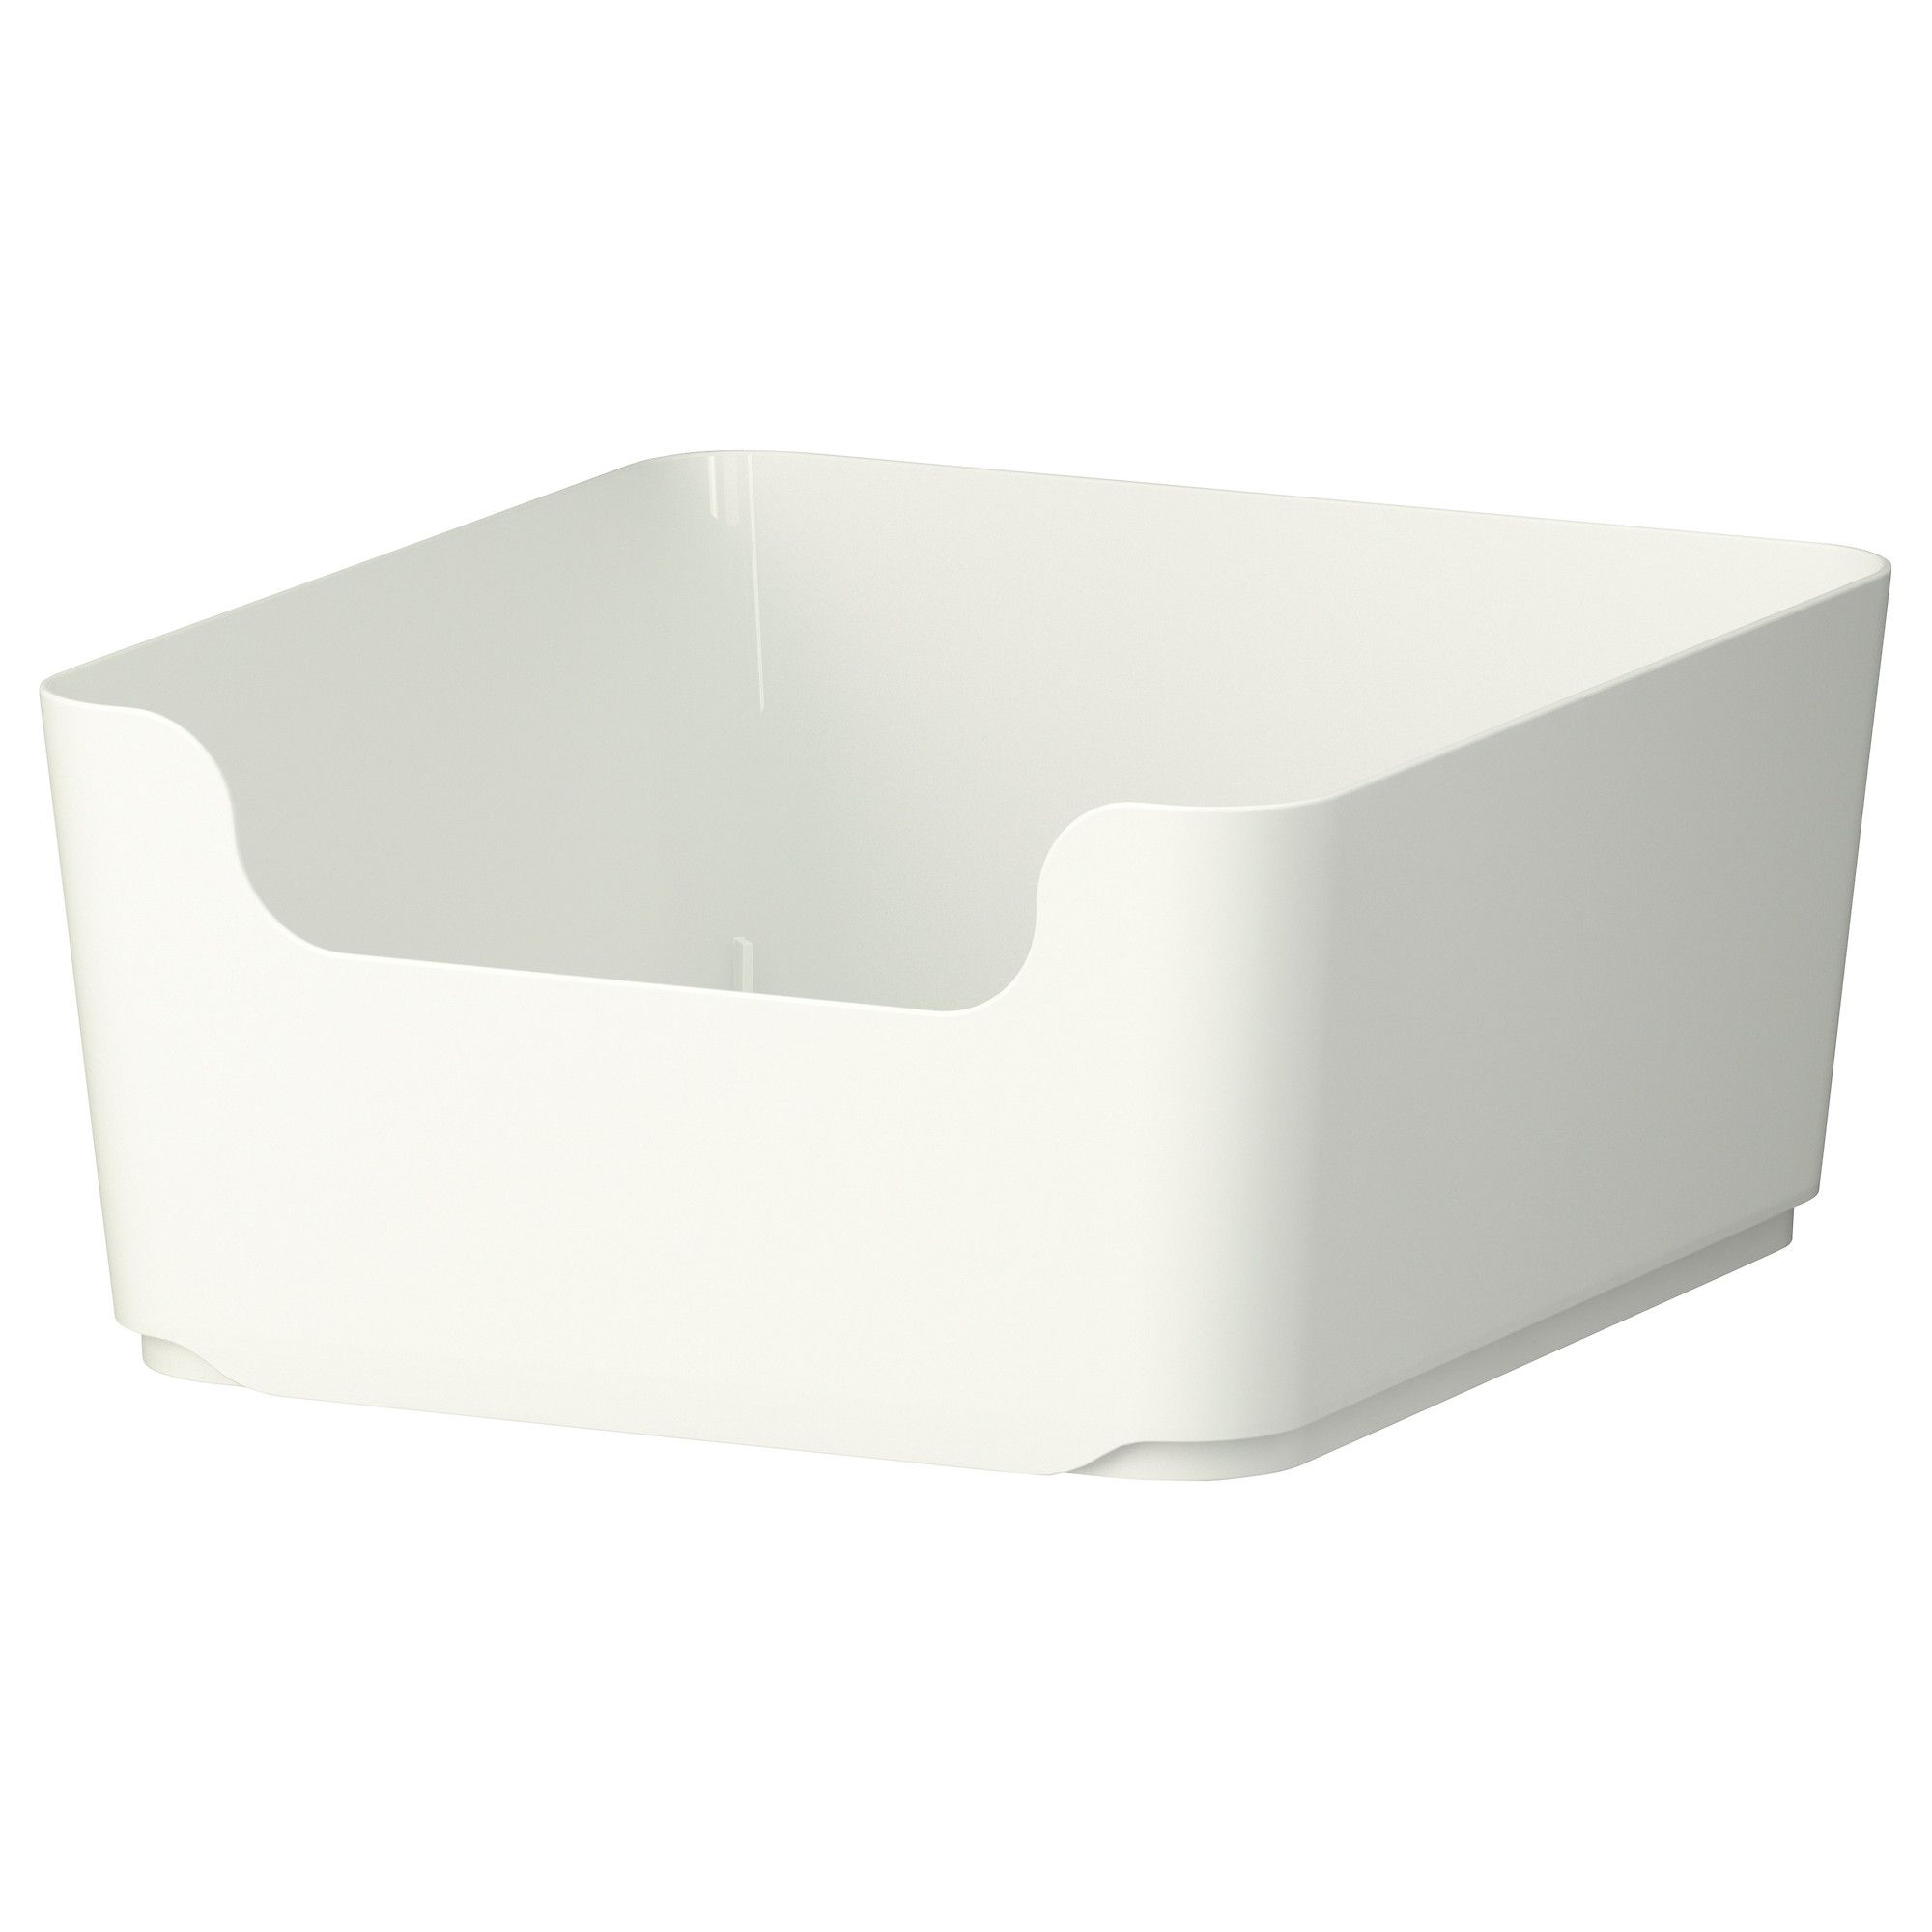 PLUGGIS Recycling bin, white | Stackable bins, Laundry cabinets and ...